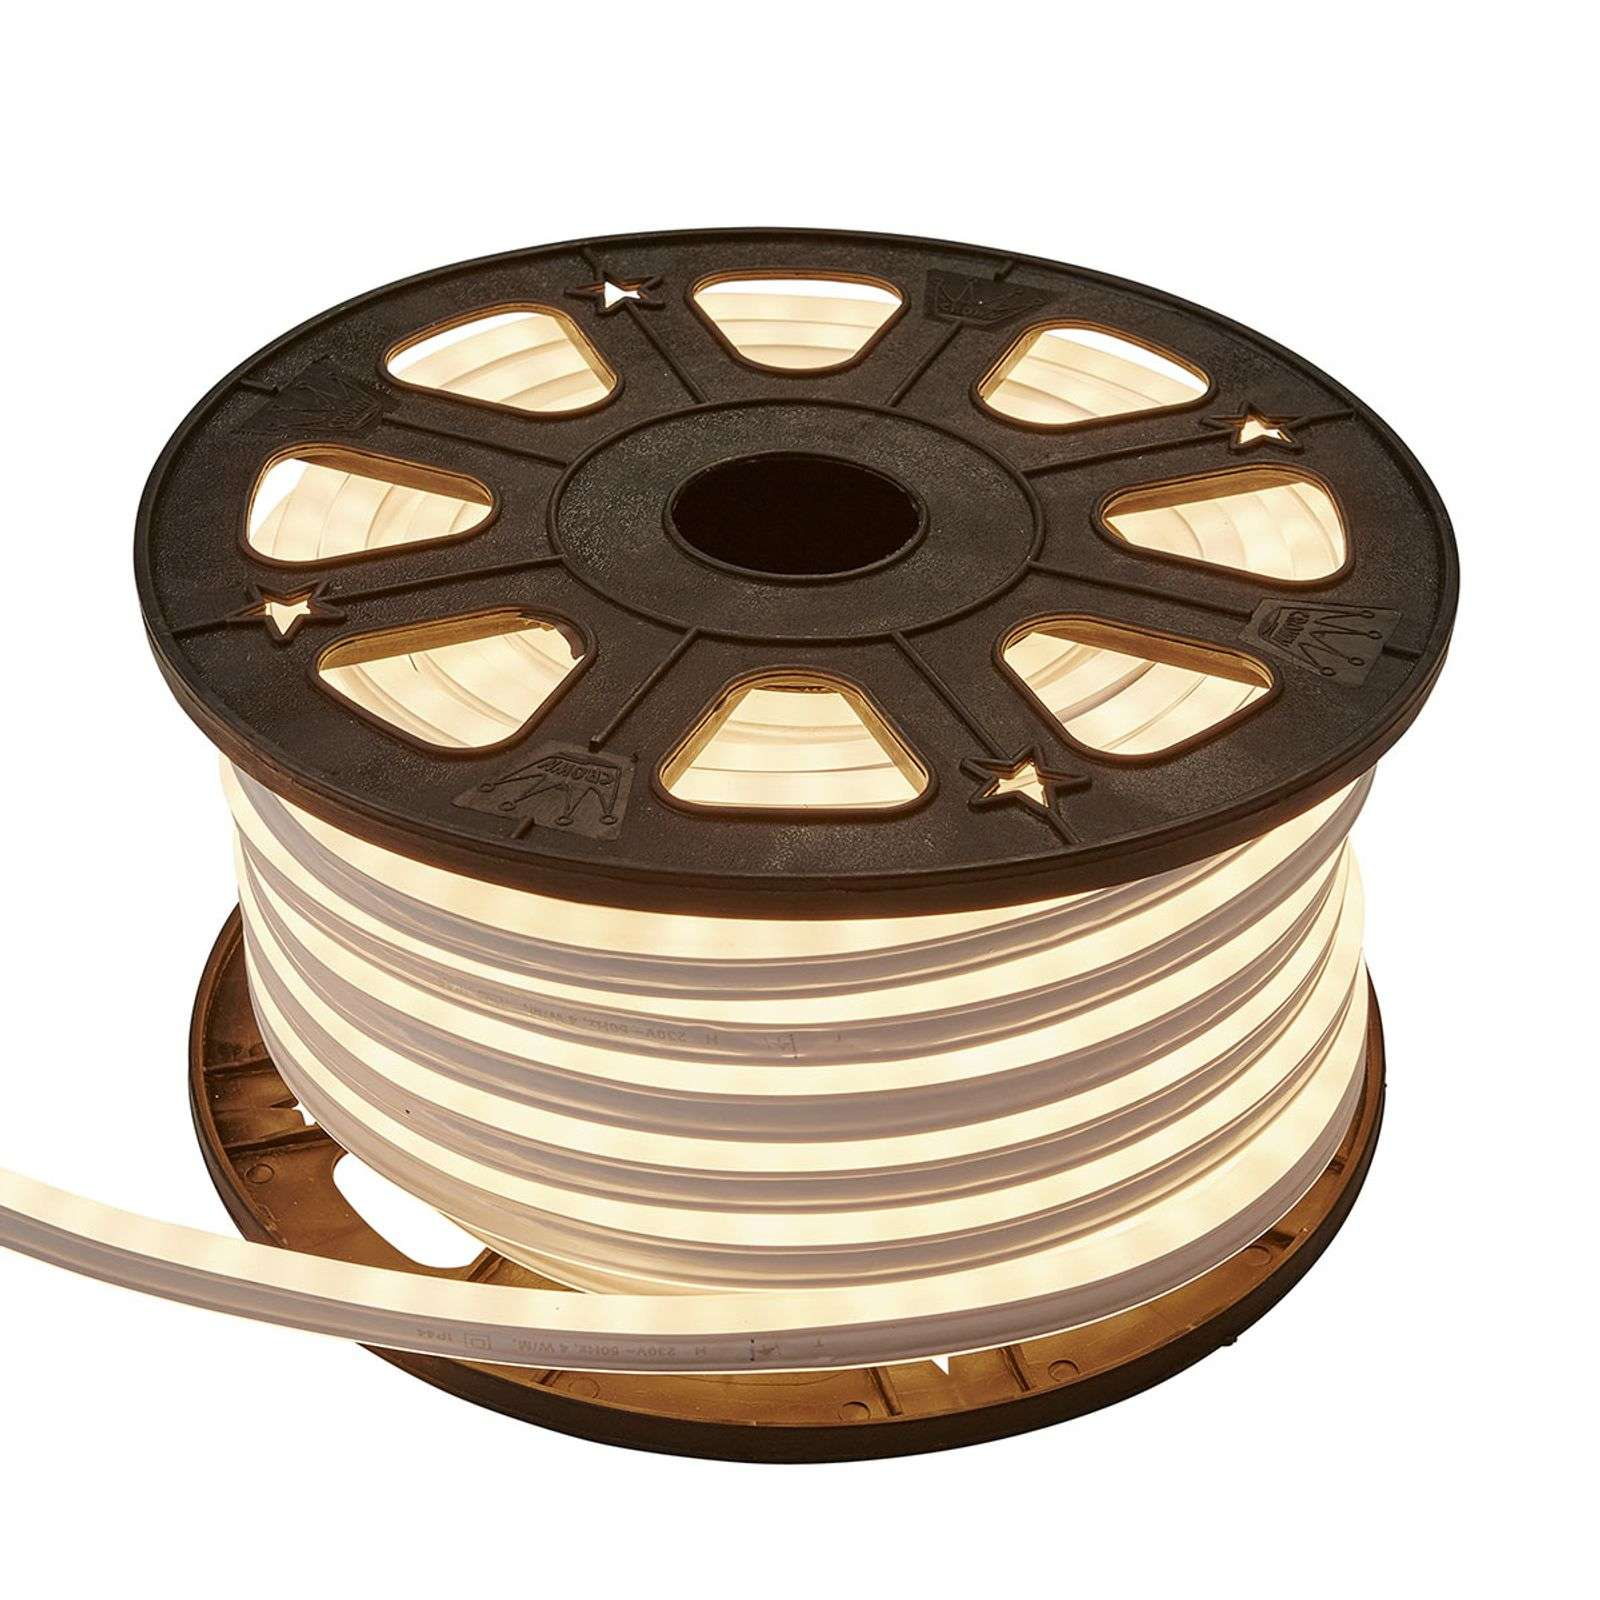 Tubo luminoso LED NEOLED REEL bianco caldo